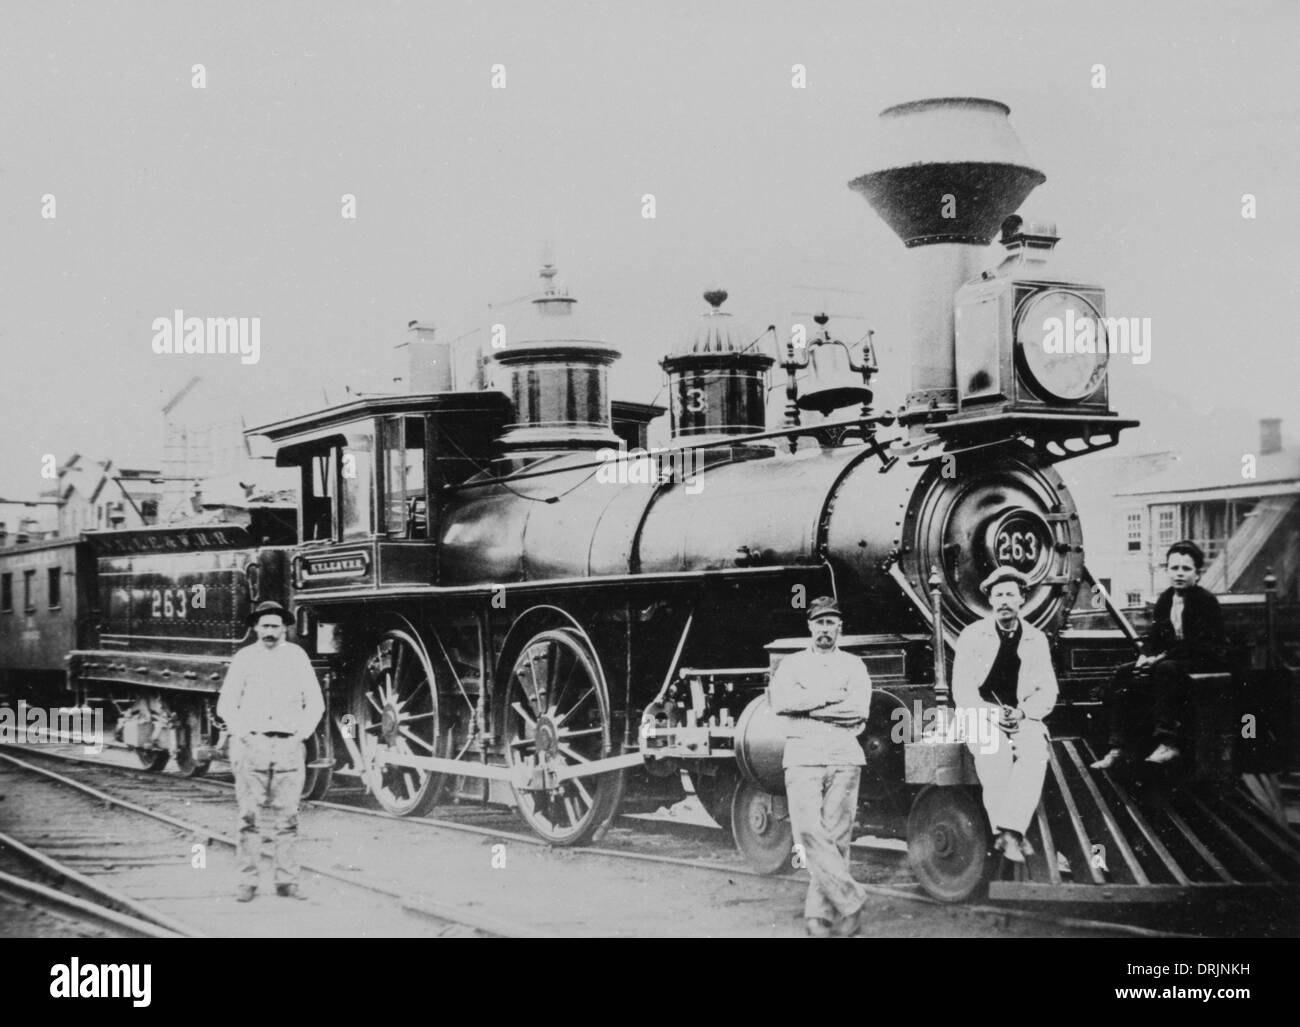 An old fashioned steam train and workers - Stock Image